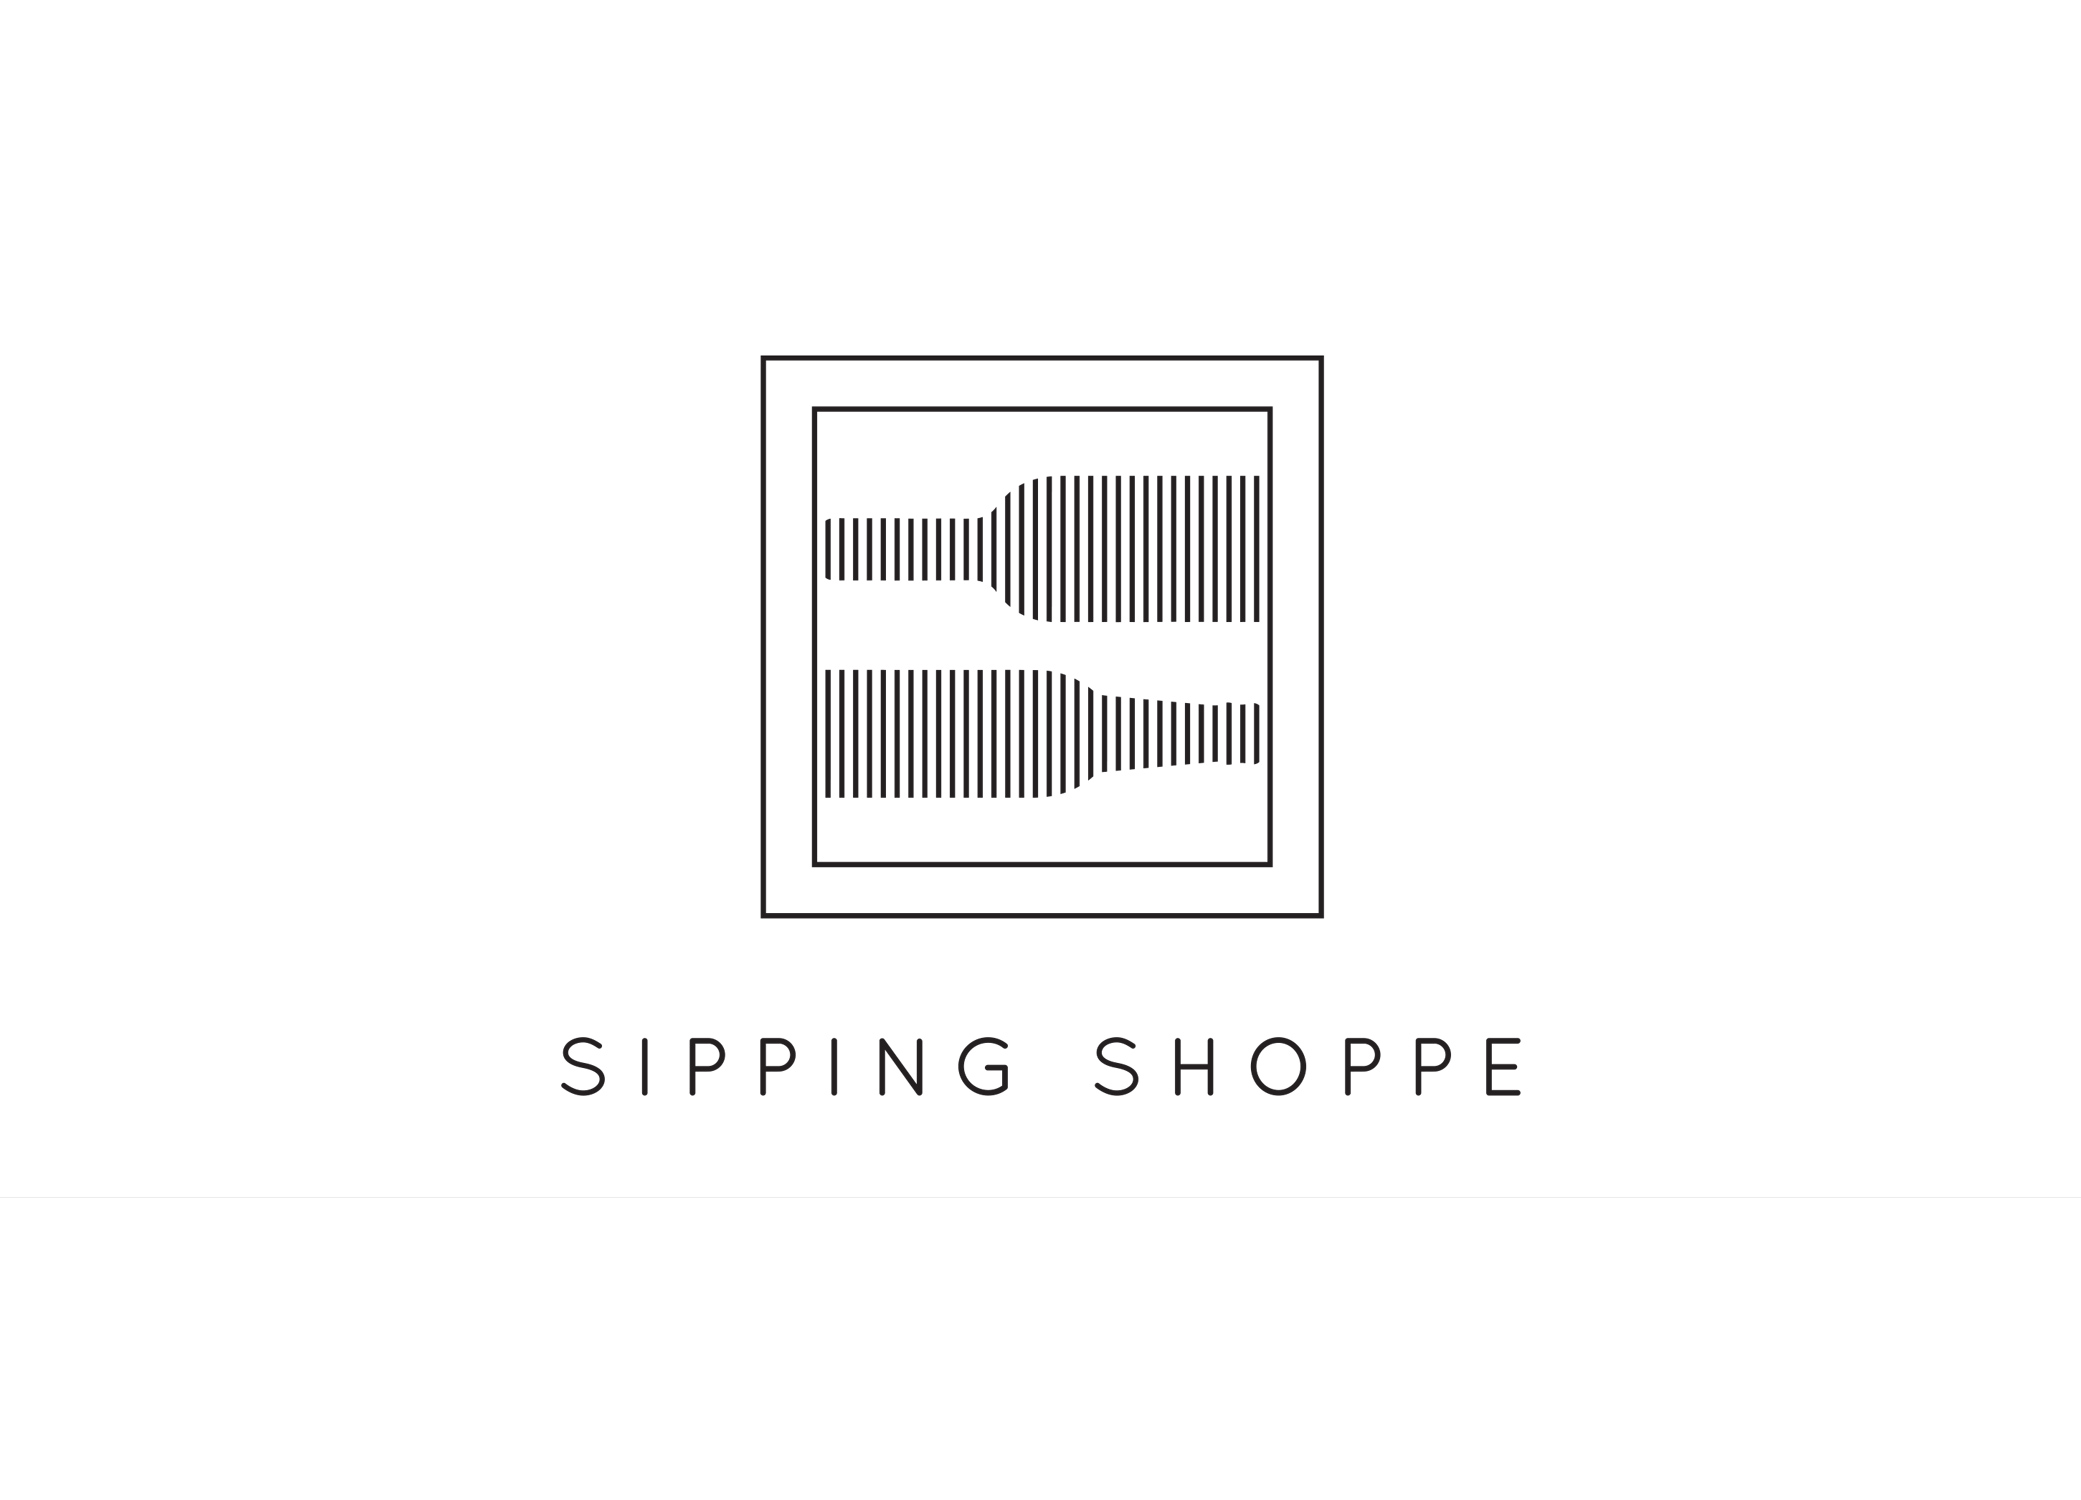 Sipping Shoppe black and white logo design featuring striped wine bottle icons in box frame outline.